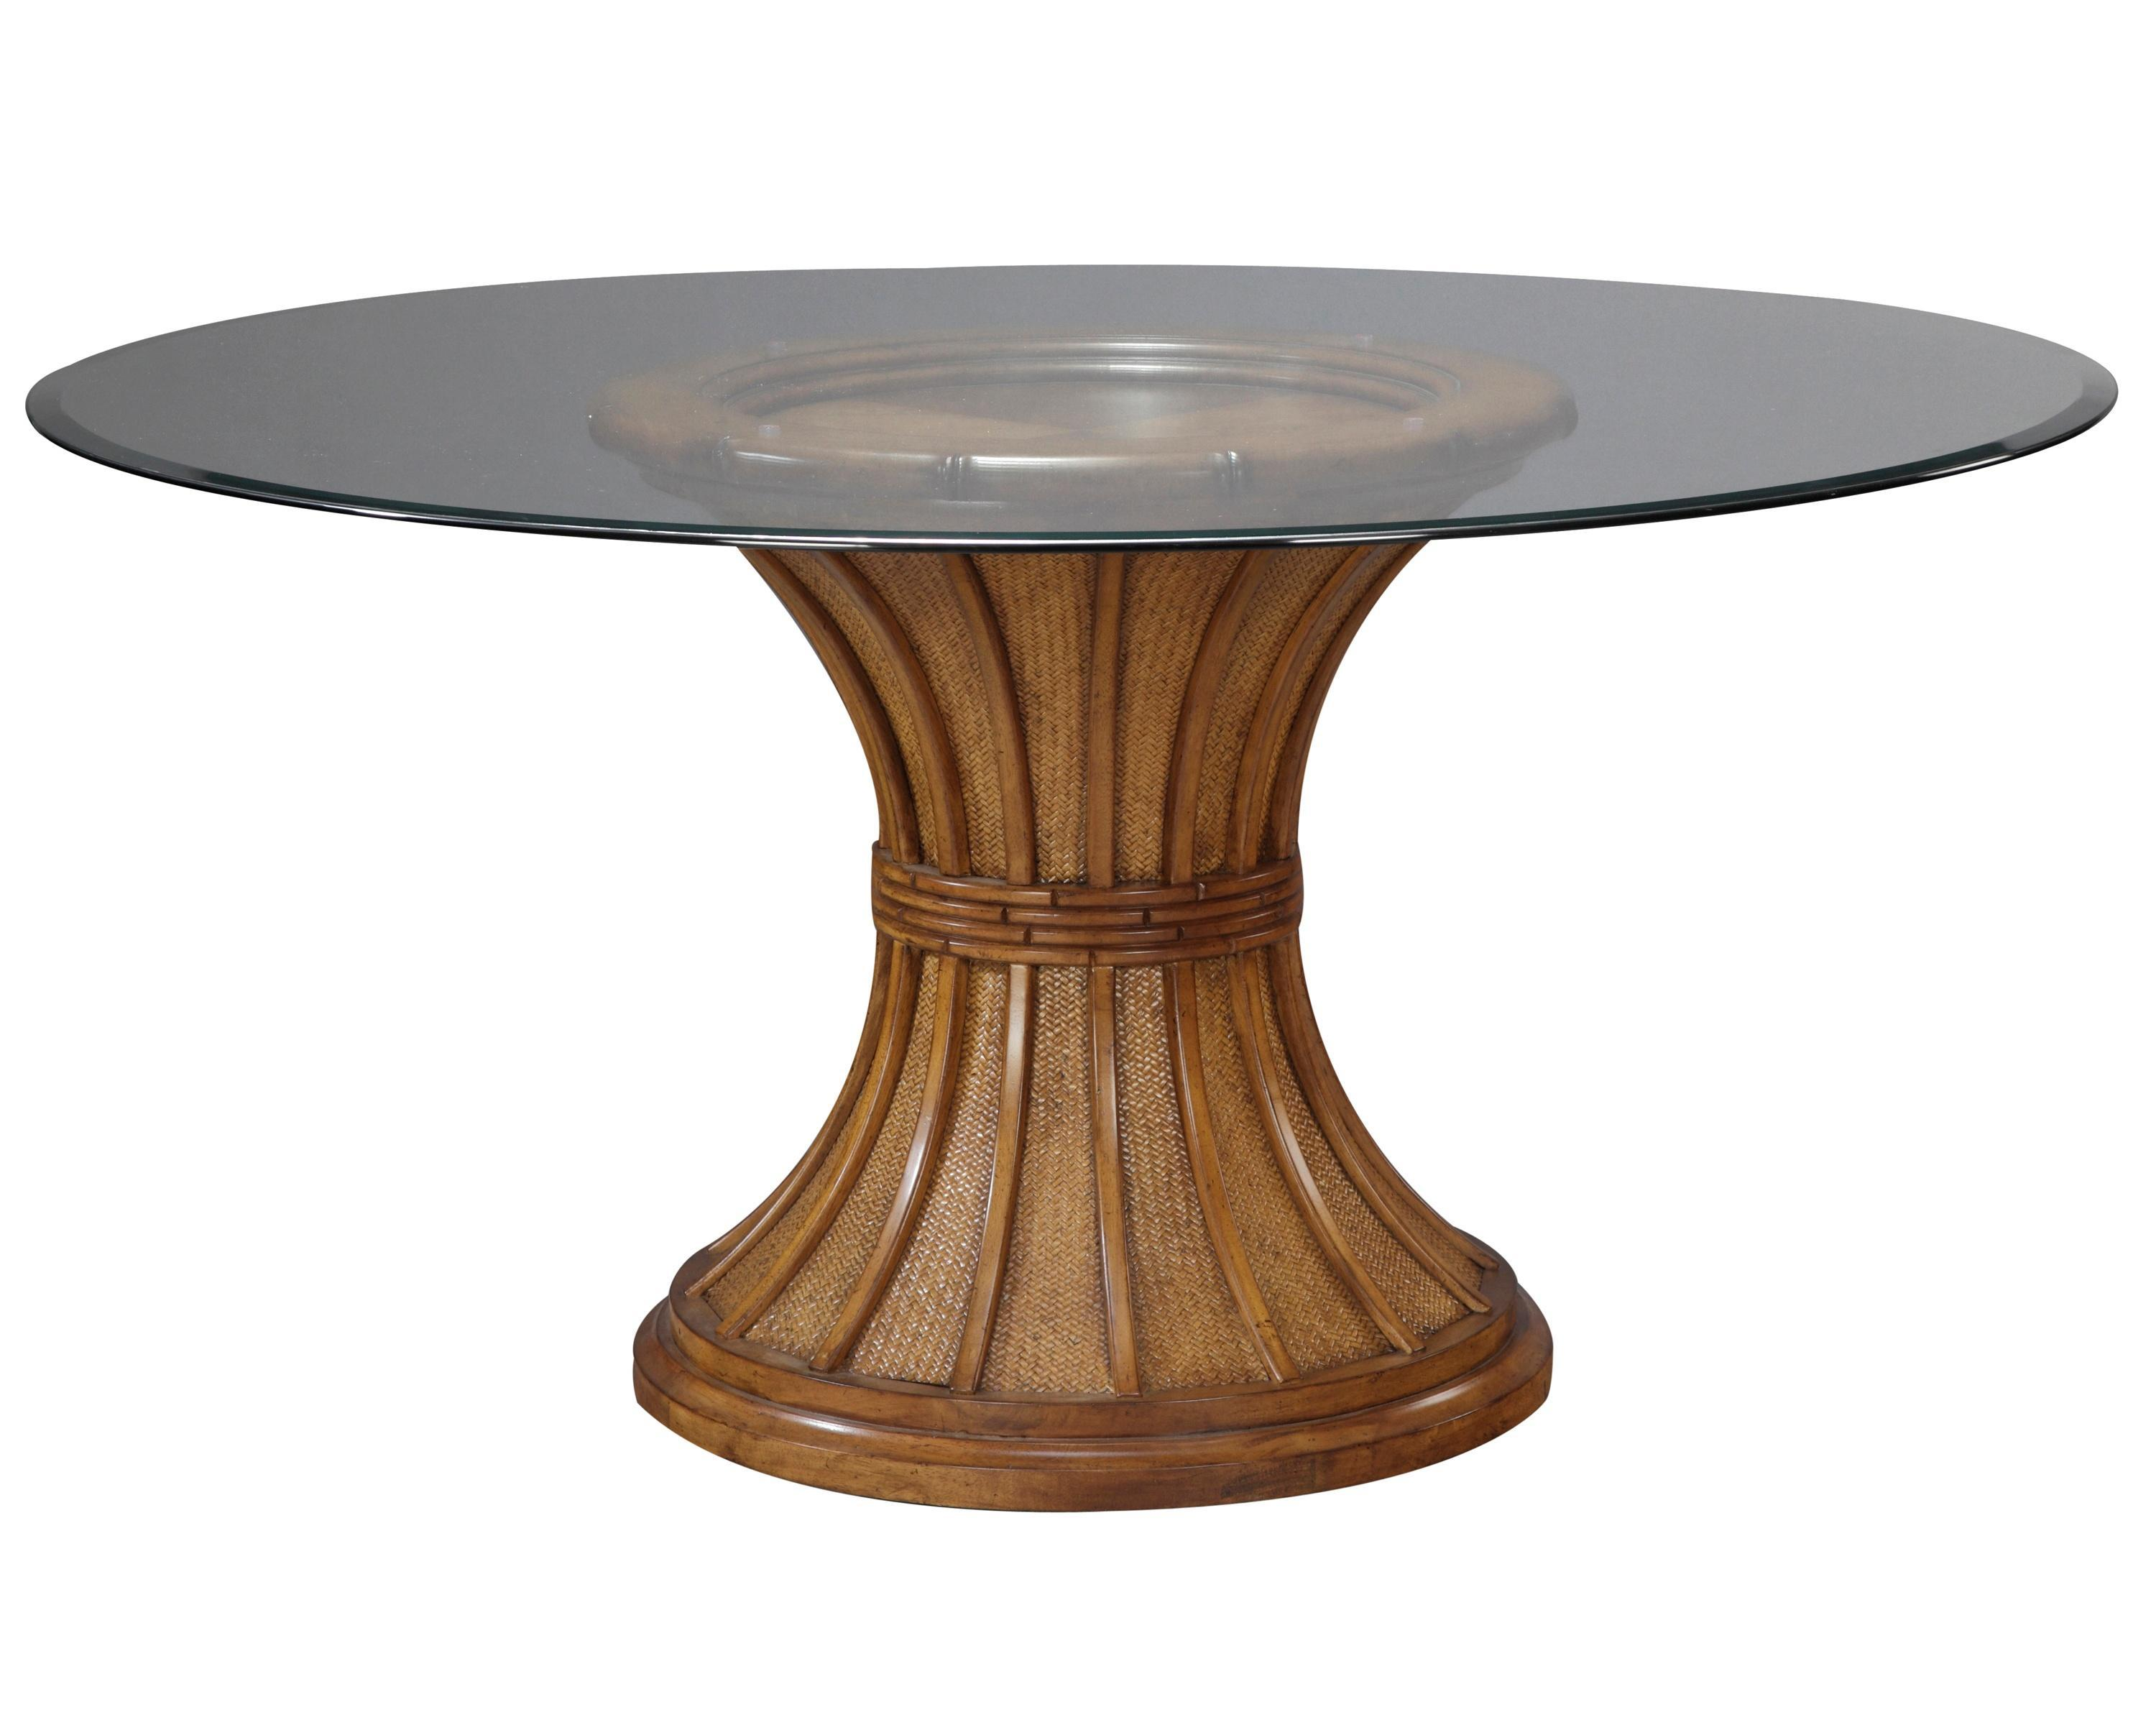 Beautiful Pedestal Table Base for Glass Top - HomesFeed